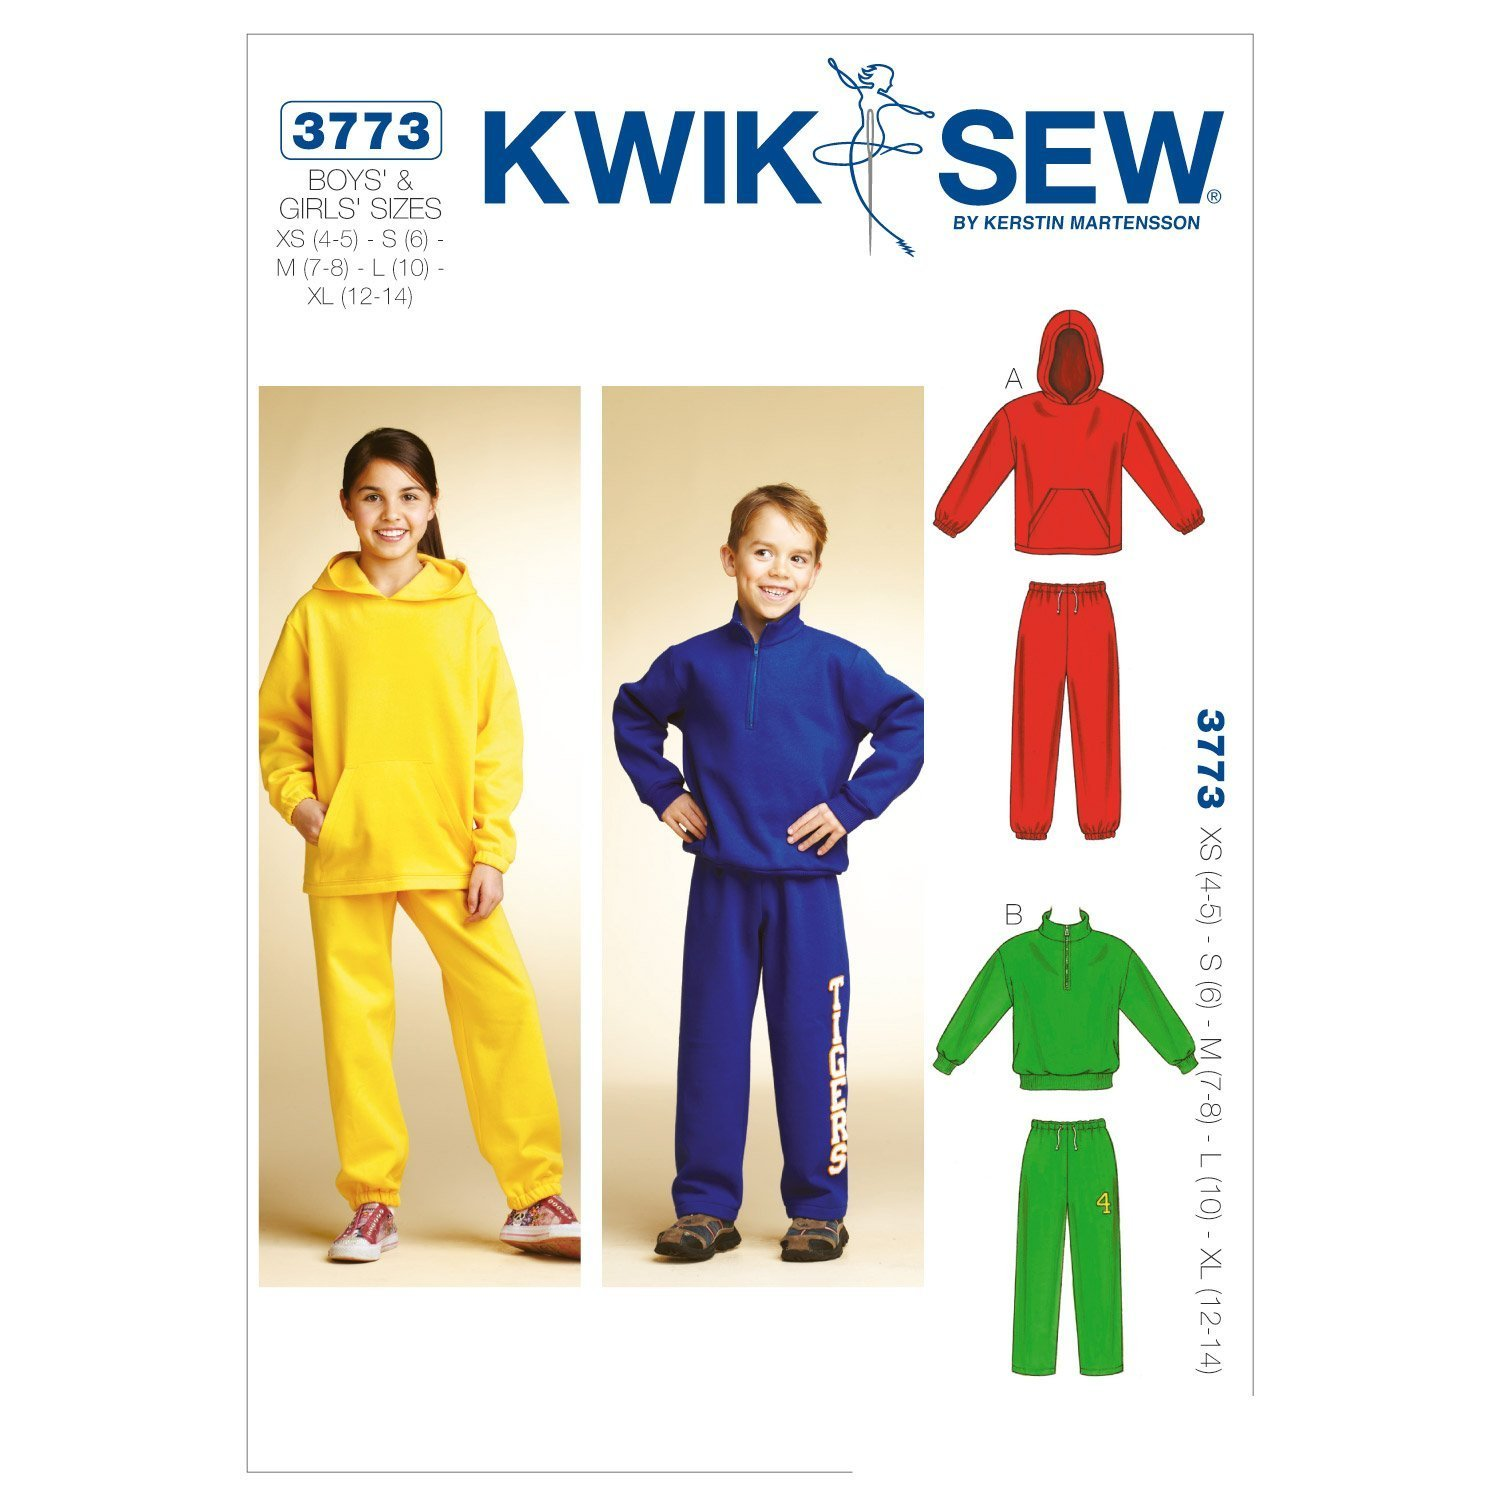 White Pack of 1 KWIK-SEW PATTERNS K3773 Size Extra-Small 4-5// Small 6// Medium 7-8// Large 10// Extra-Large 12-14 Shirts and Pants